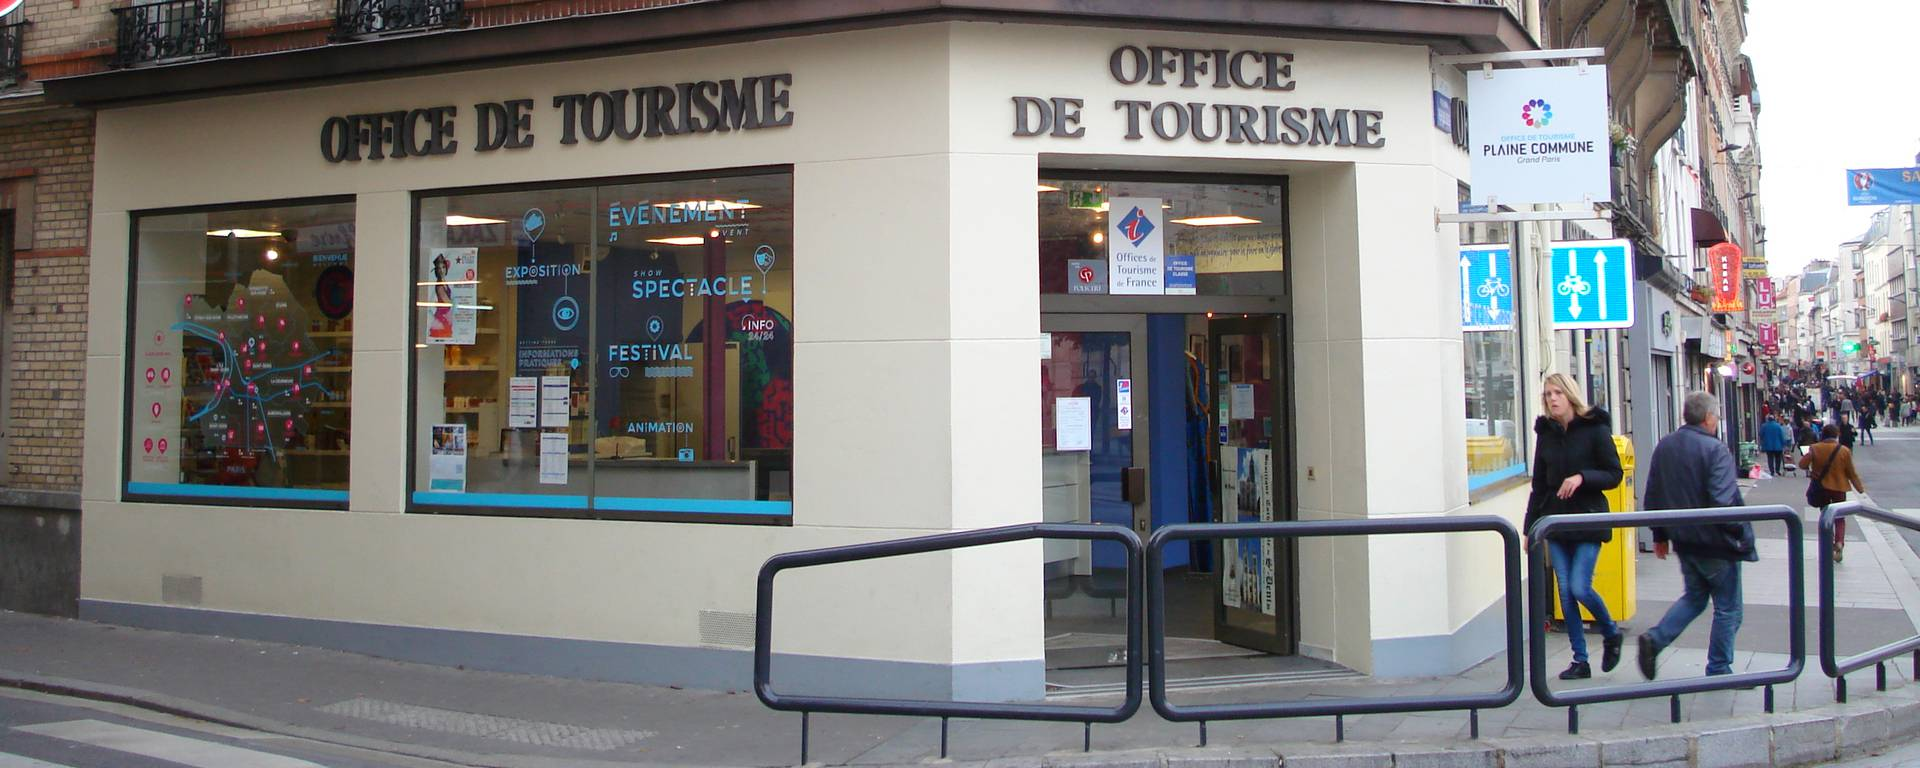 L 39 office de tourisme de plaine commune grand paris - Office du tourisme du portugal a paris ...